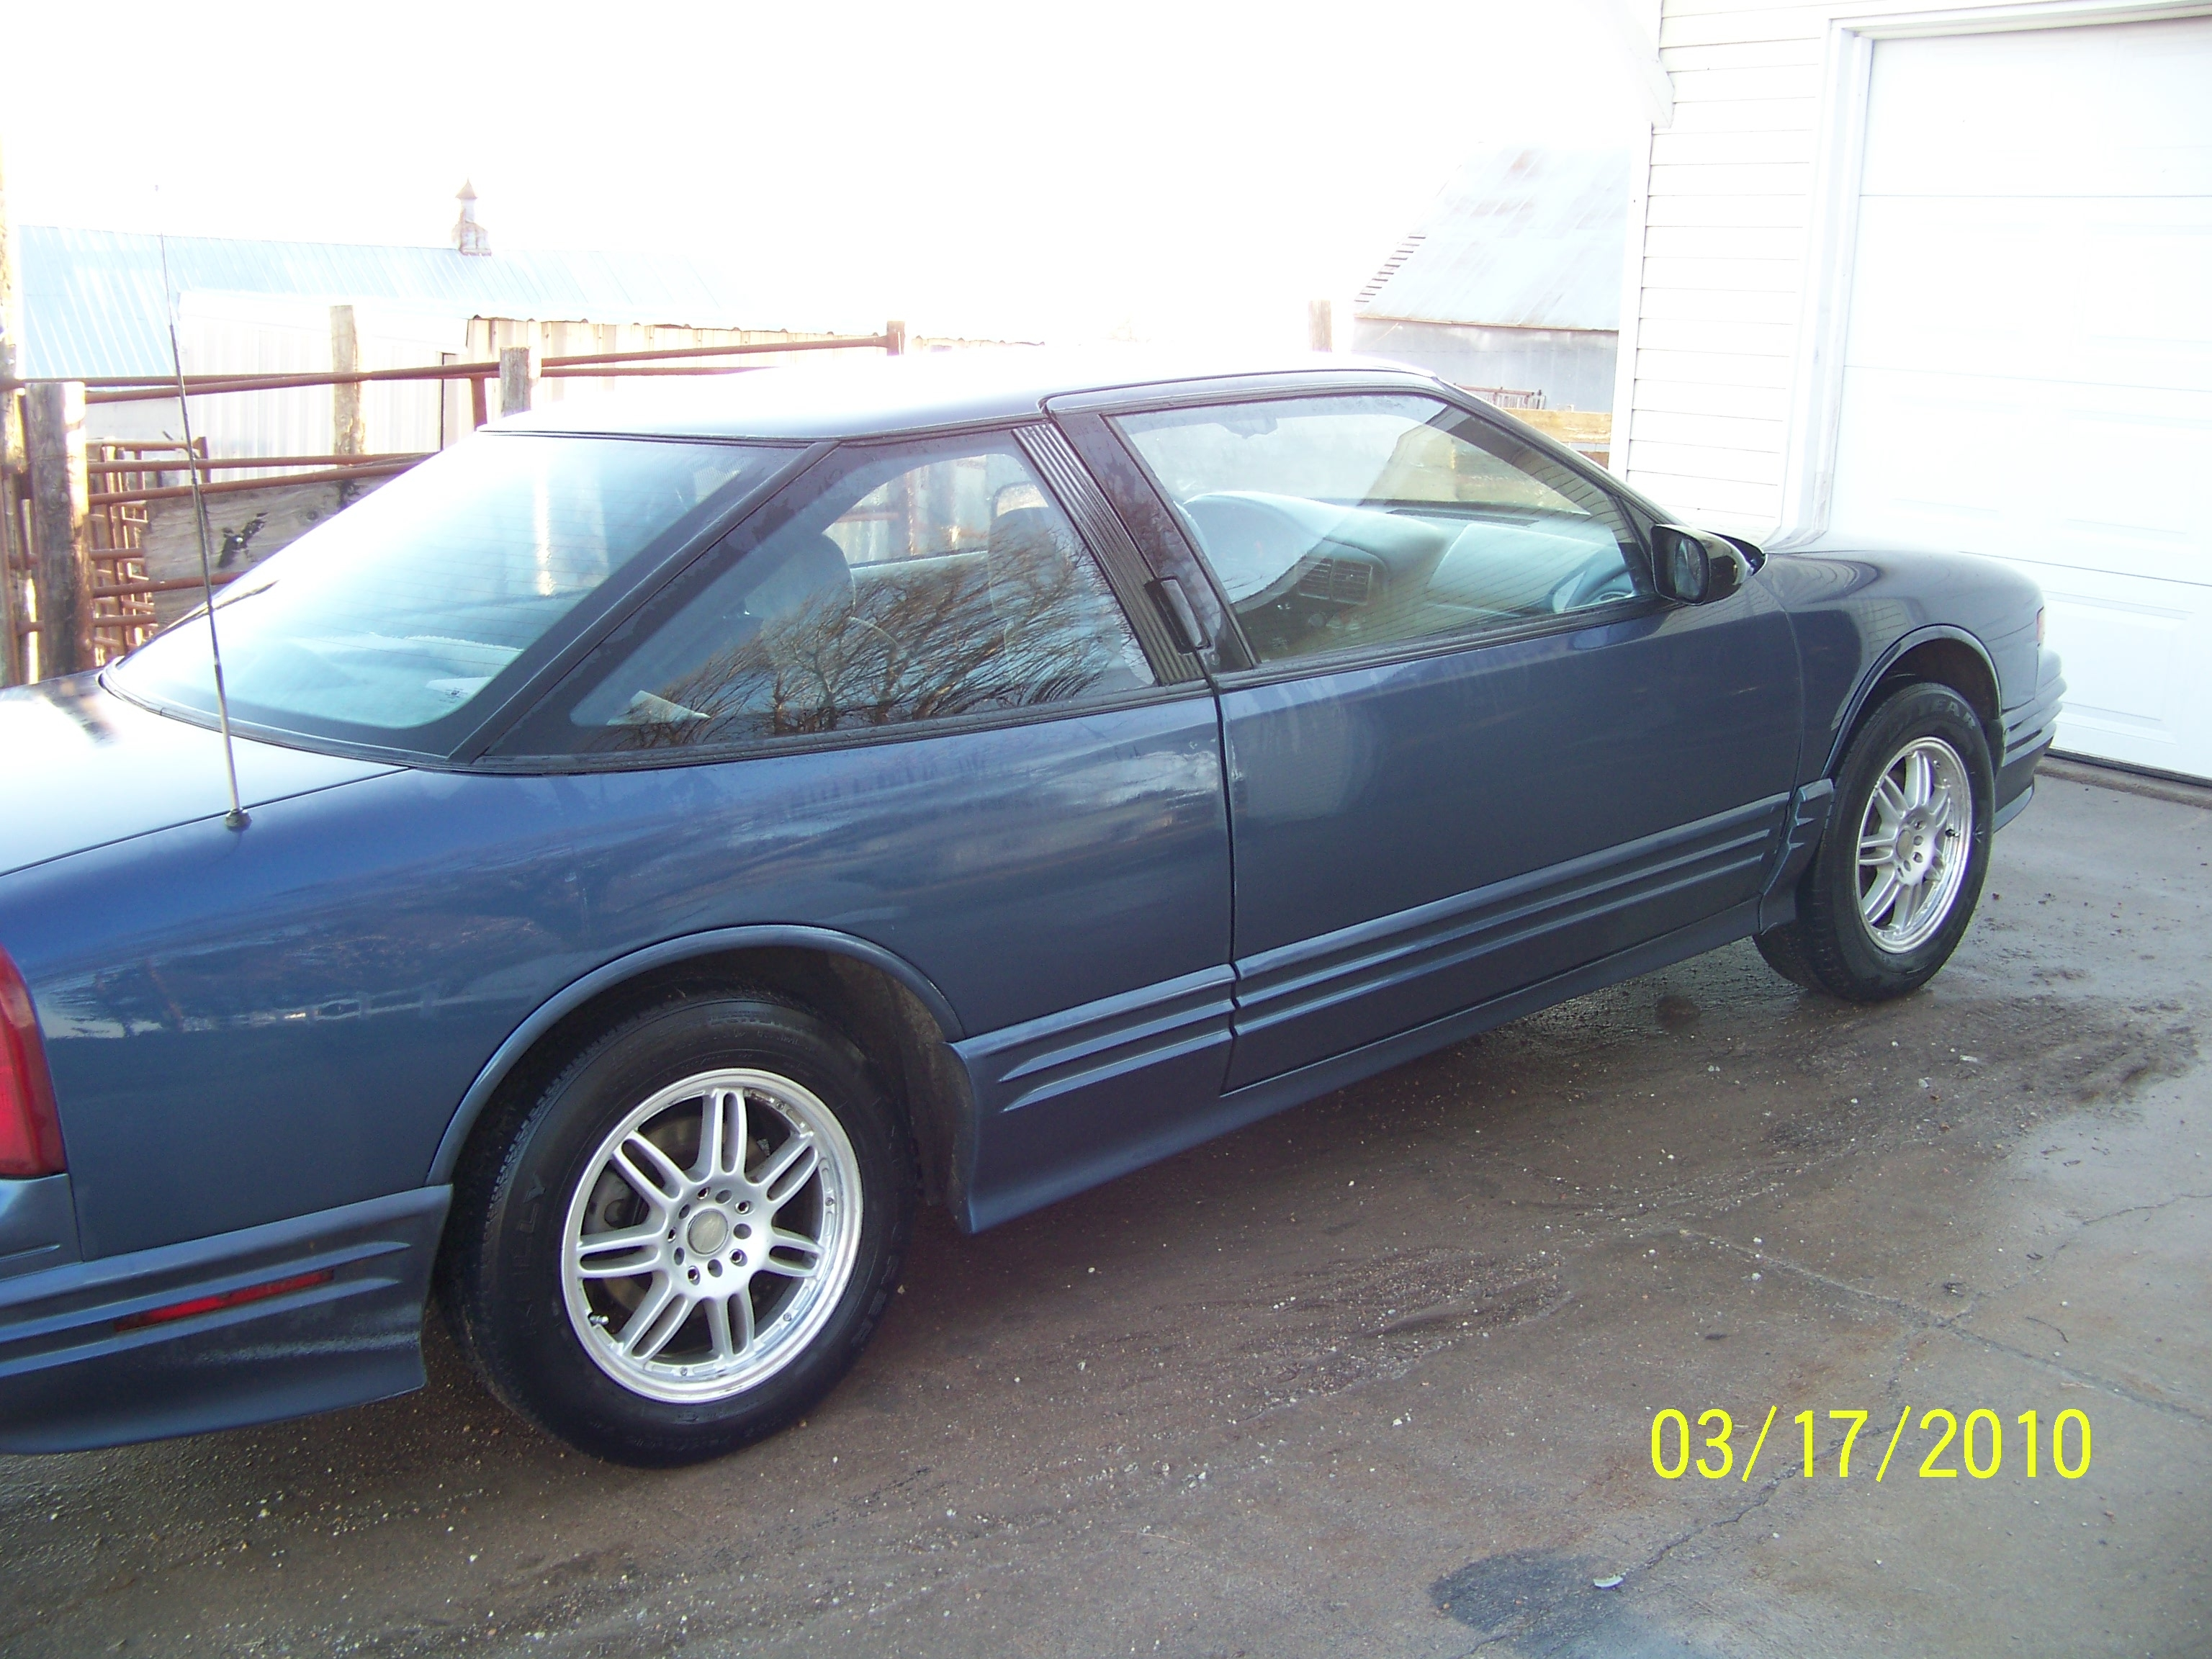 1997 oldsmobile cutlass supreme coupe pictures information and specs auto database com 1997 oldsmobile cutlass supreme coupe